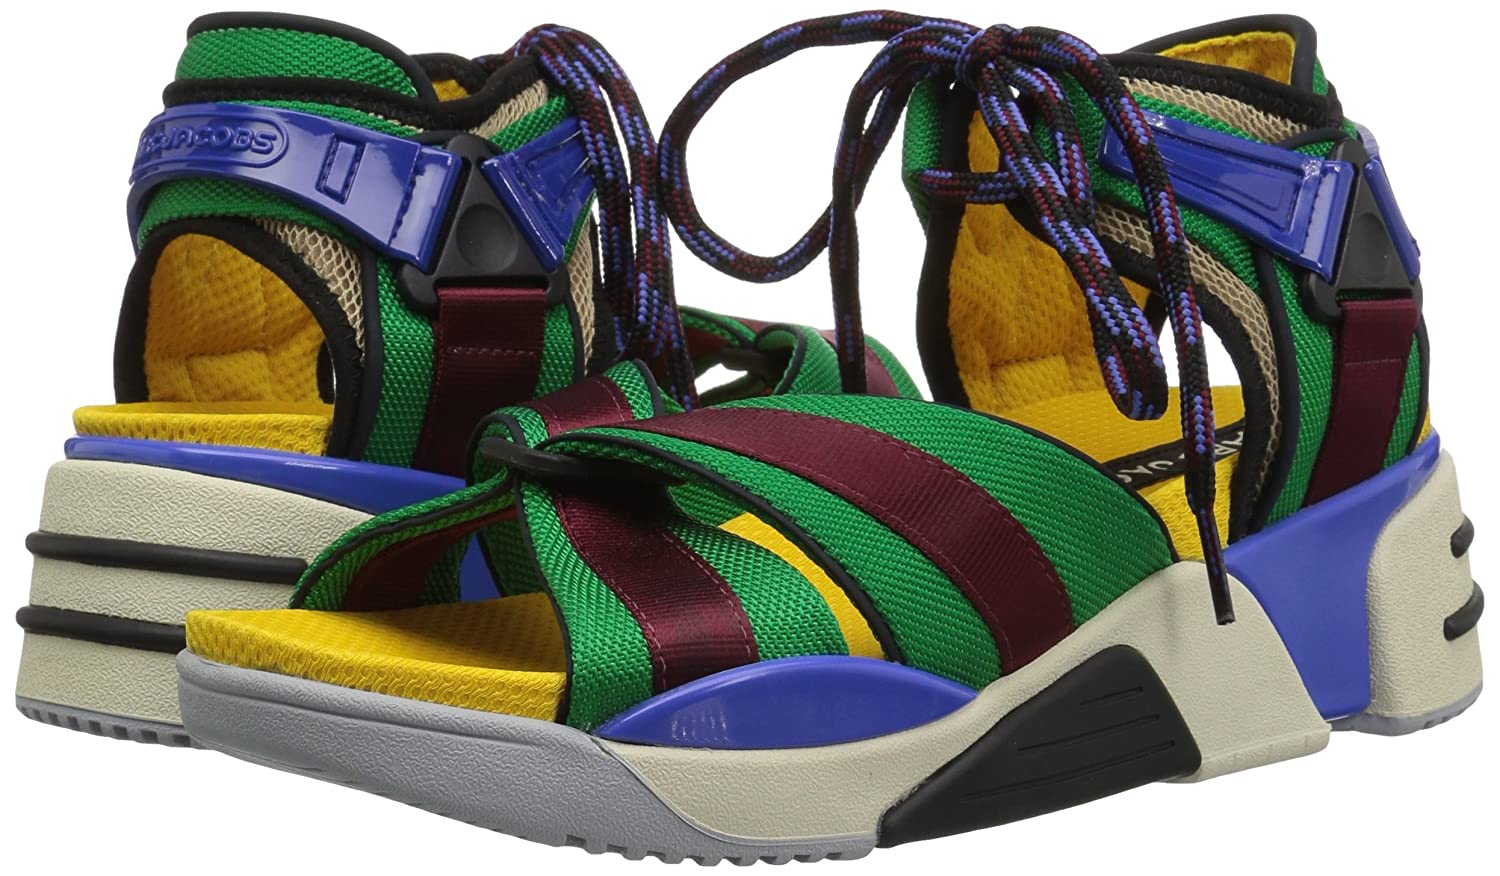 Marc Jacobs Women's Somewhere Sport Sandal B0787BK6T2 38 M EU (8 US)|Blue/Multi